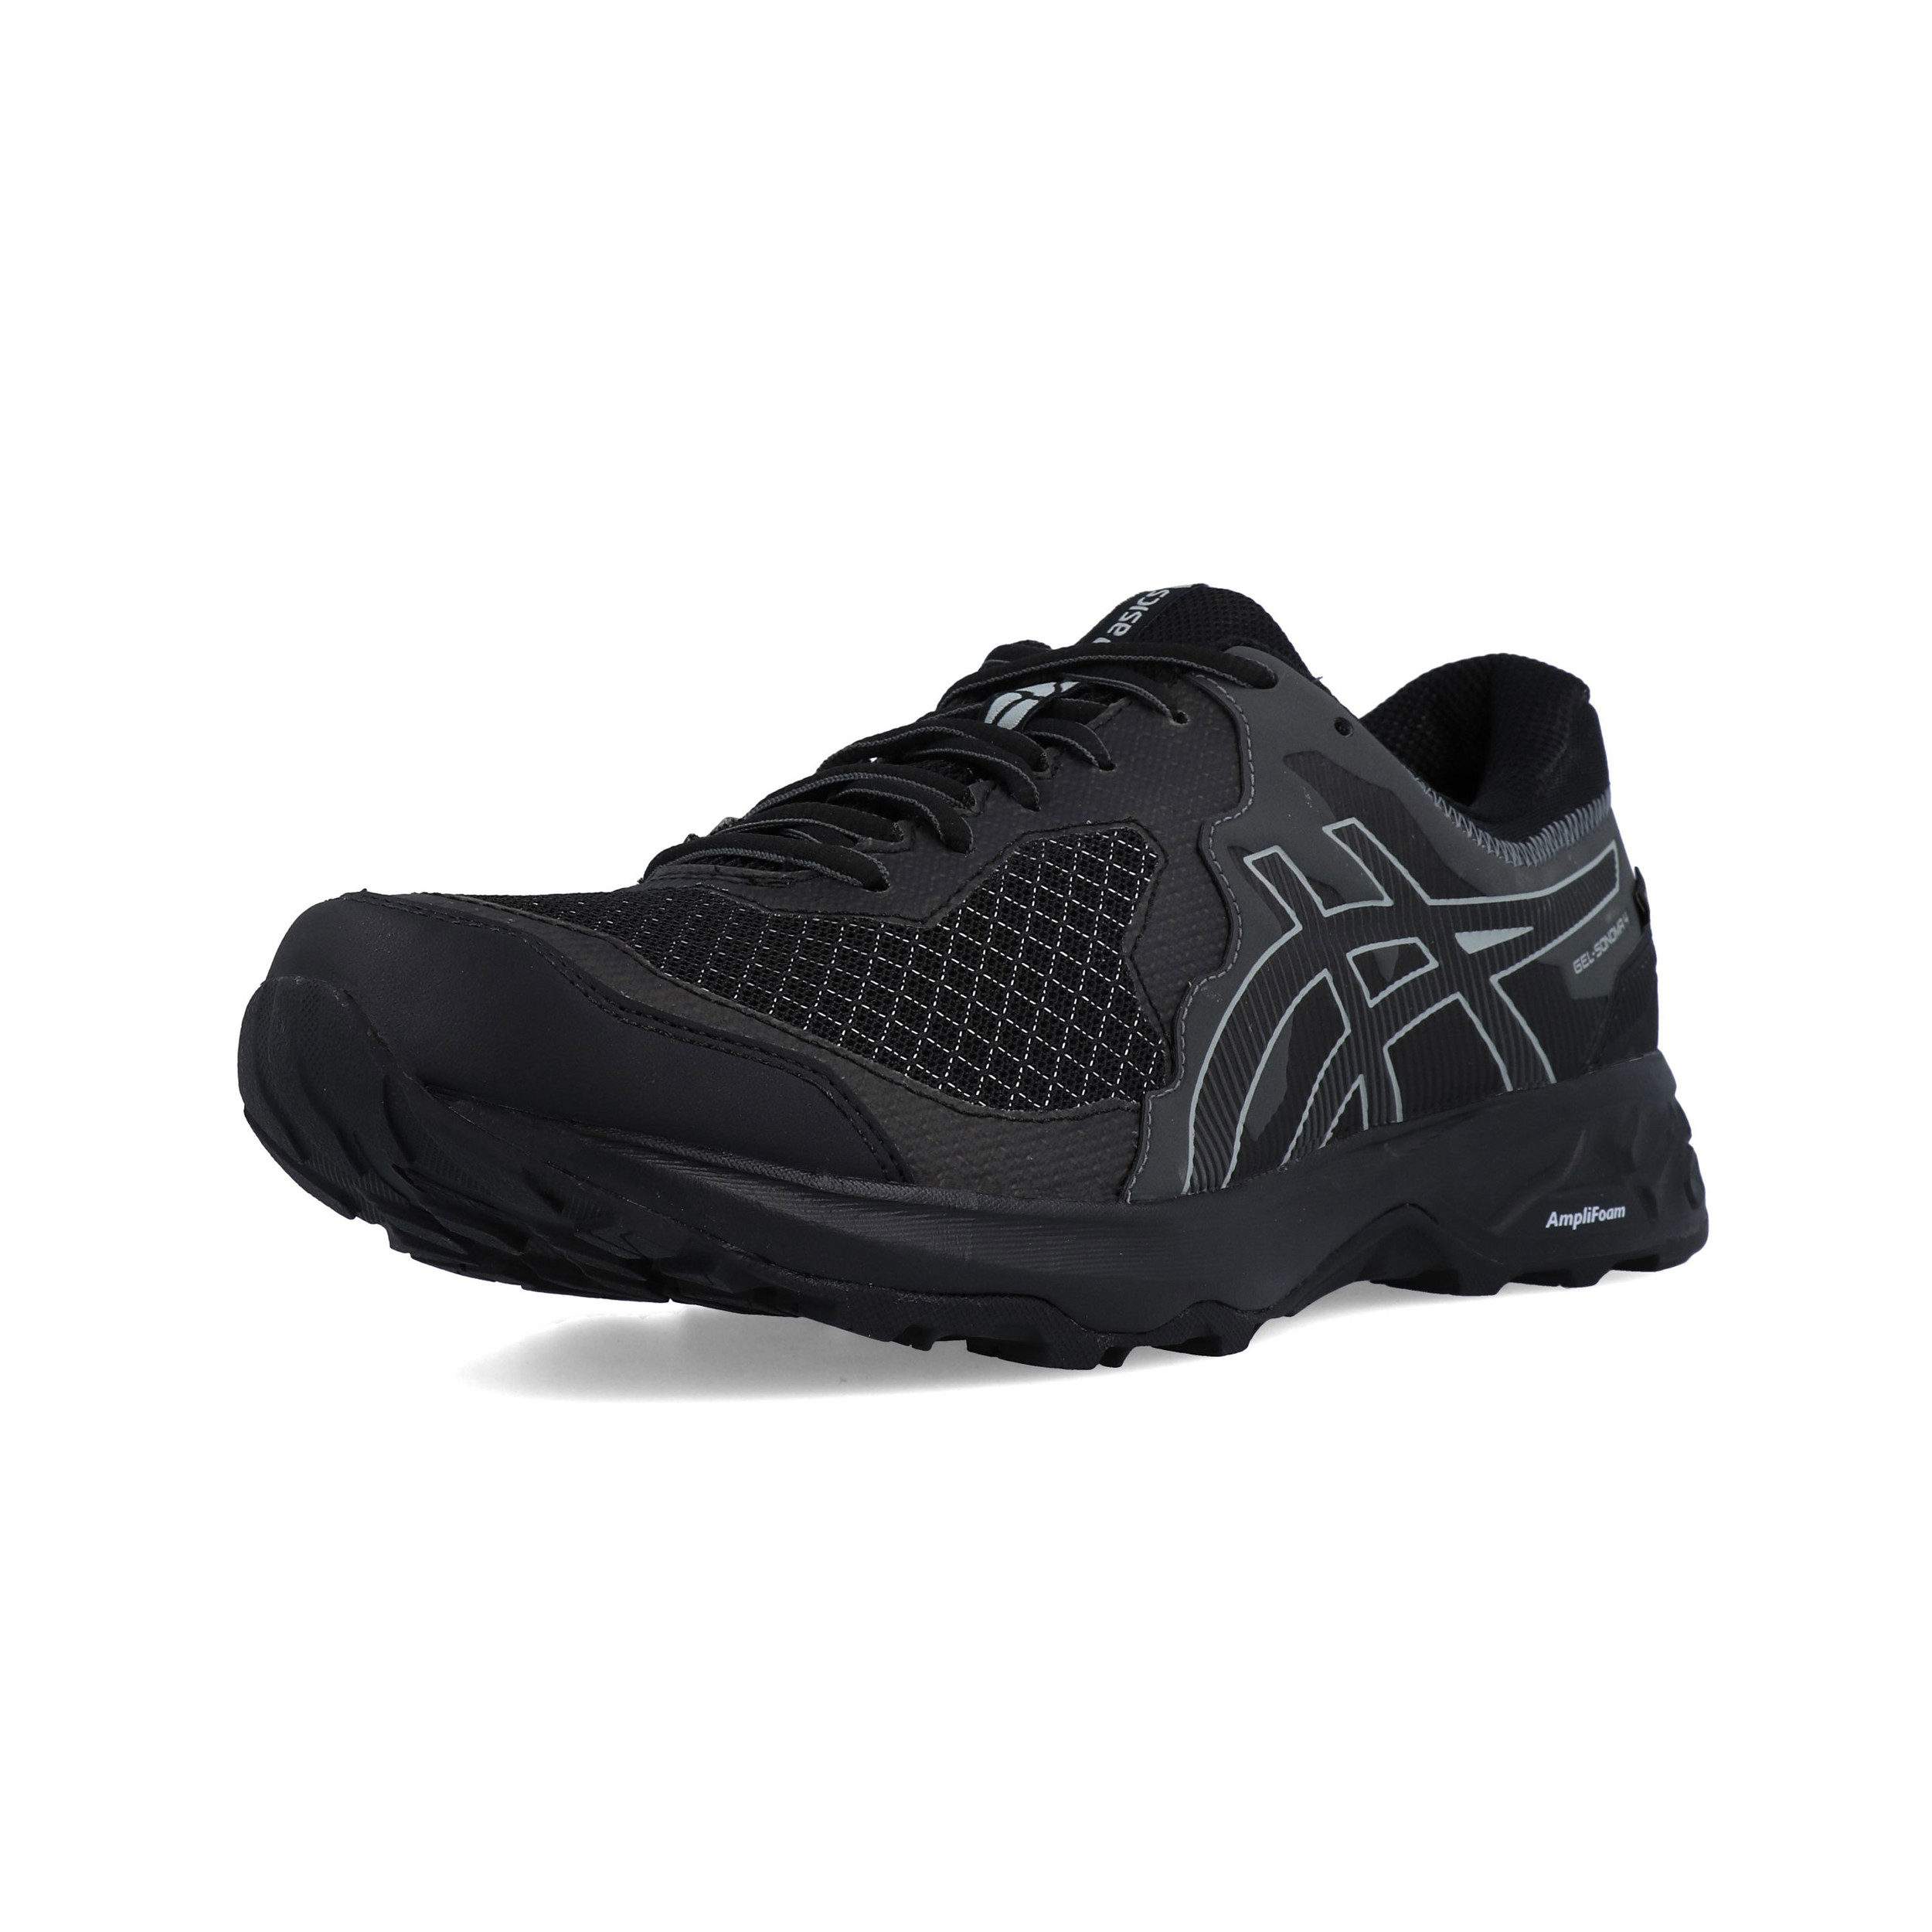 96e66cd1b Details about Asics Womens Gel-Sonoma 4 GORE-TEX Trail Running Shoes  Trainers Sneakers Black